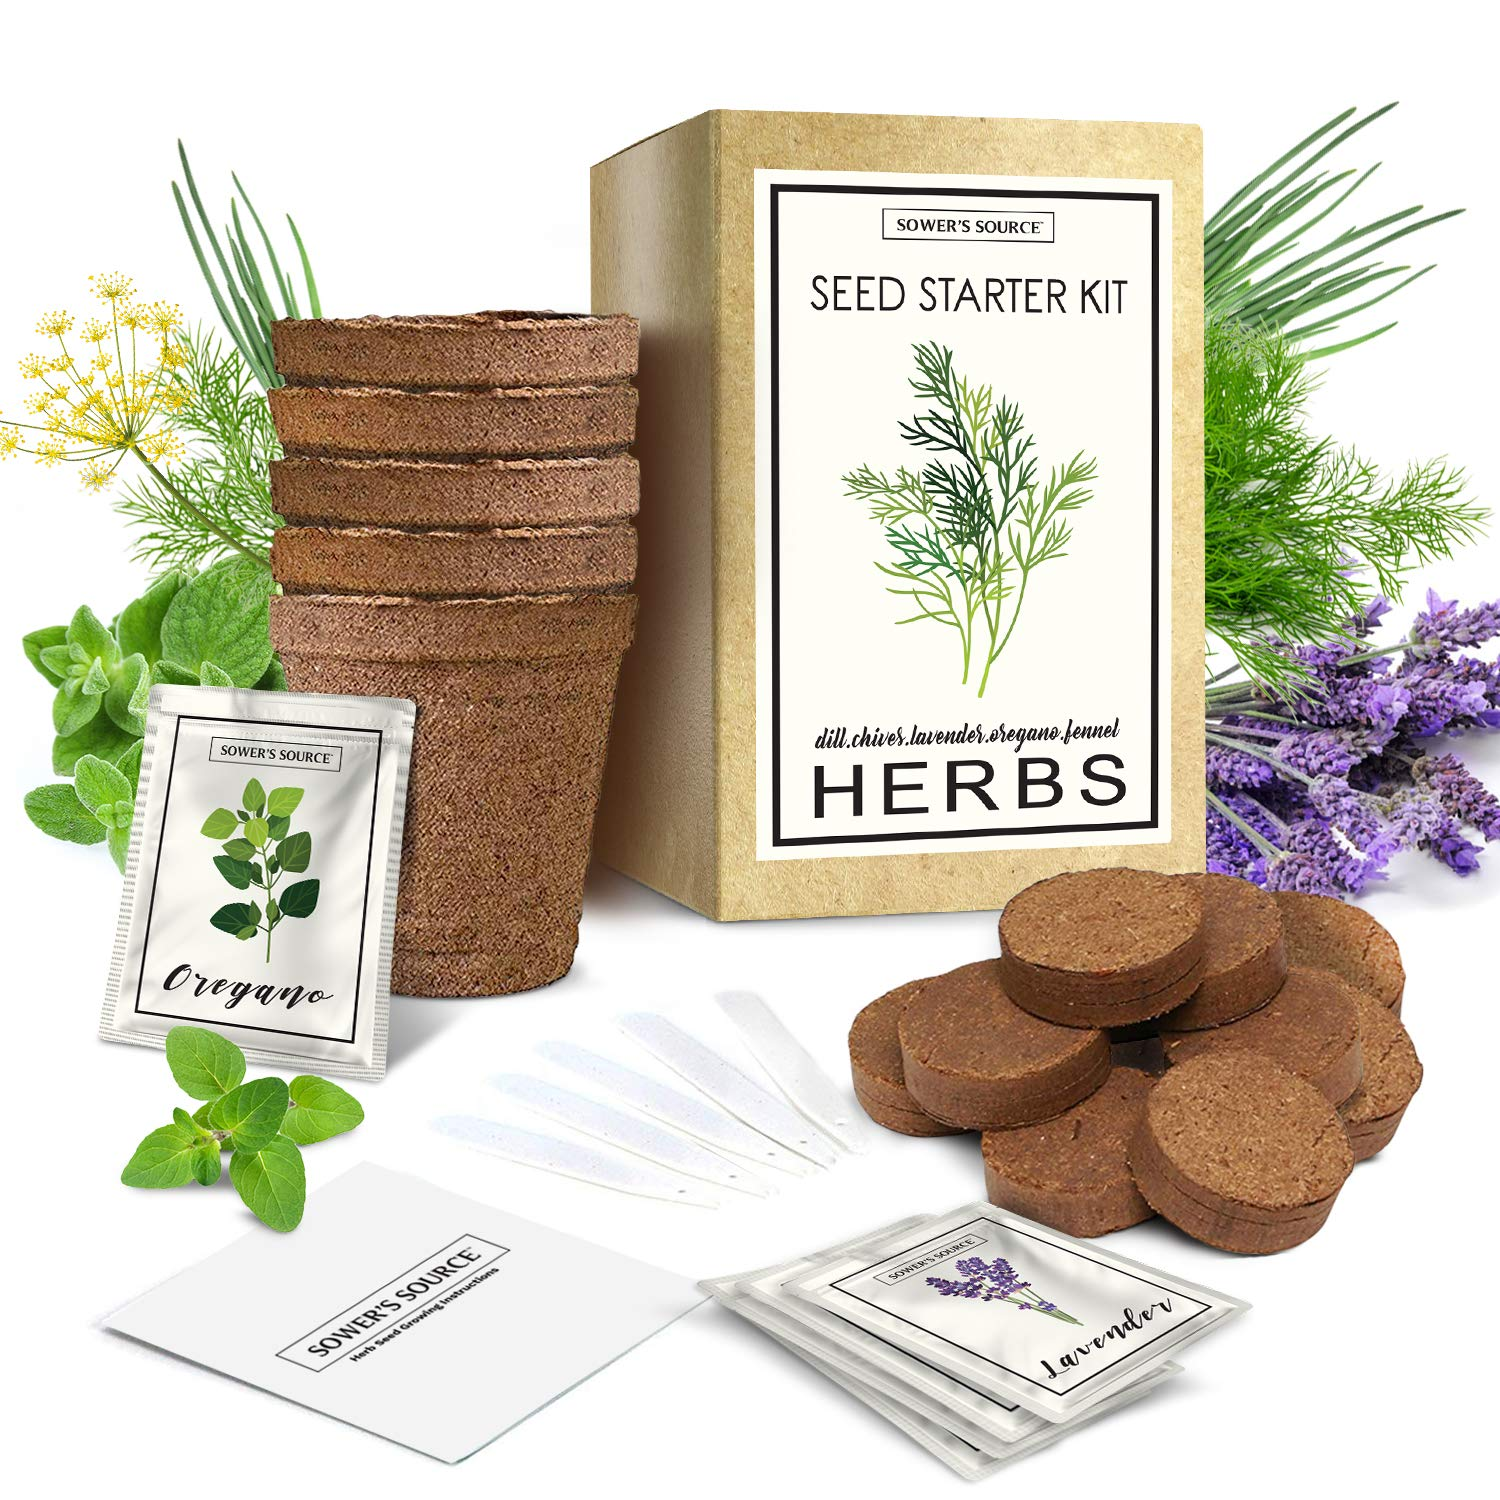 Herb Garden Starter Kit Indoor | Natural, Organic Growing Kit | Perfect for Gardener Gifts | Pots, Markers, Seed Packets, Soil Mix | Lavender, Dill, Chives, Oregano, Fennel | Sower's Source by Sower's Source